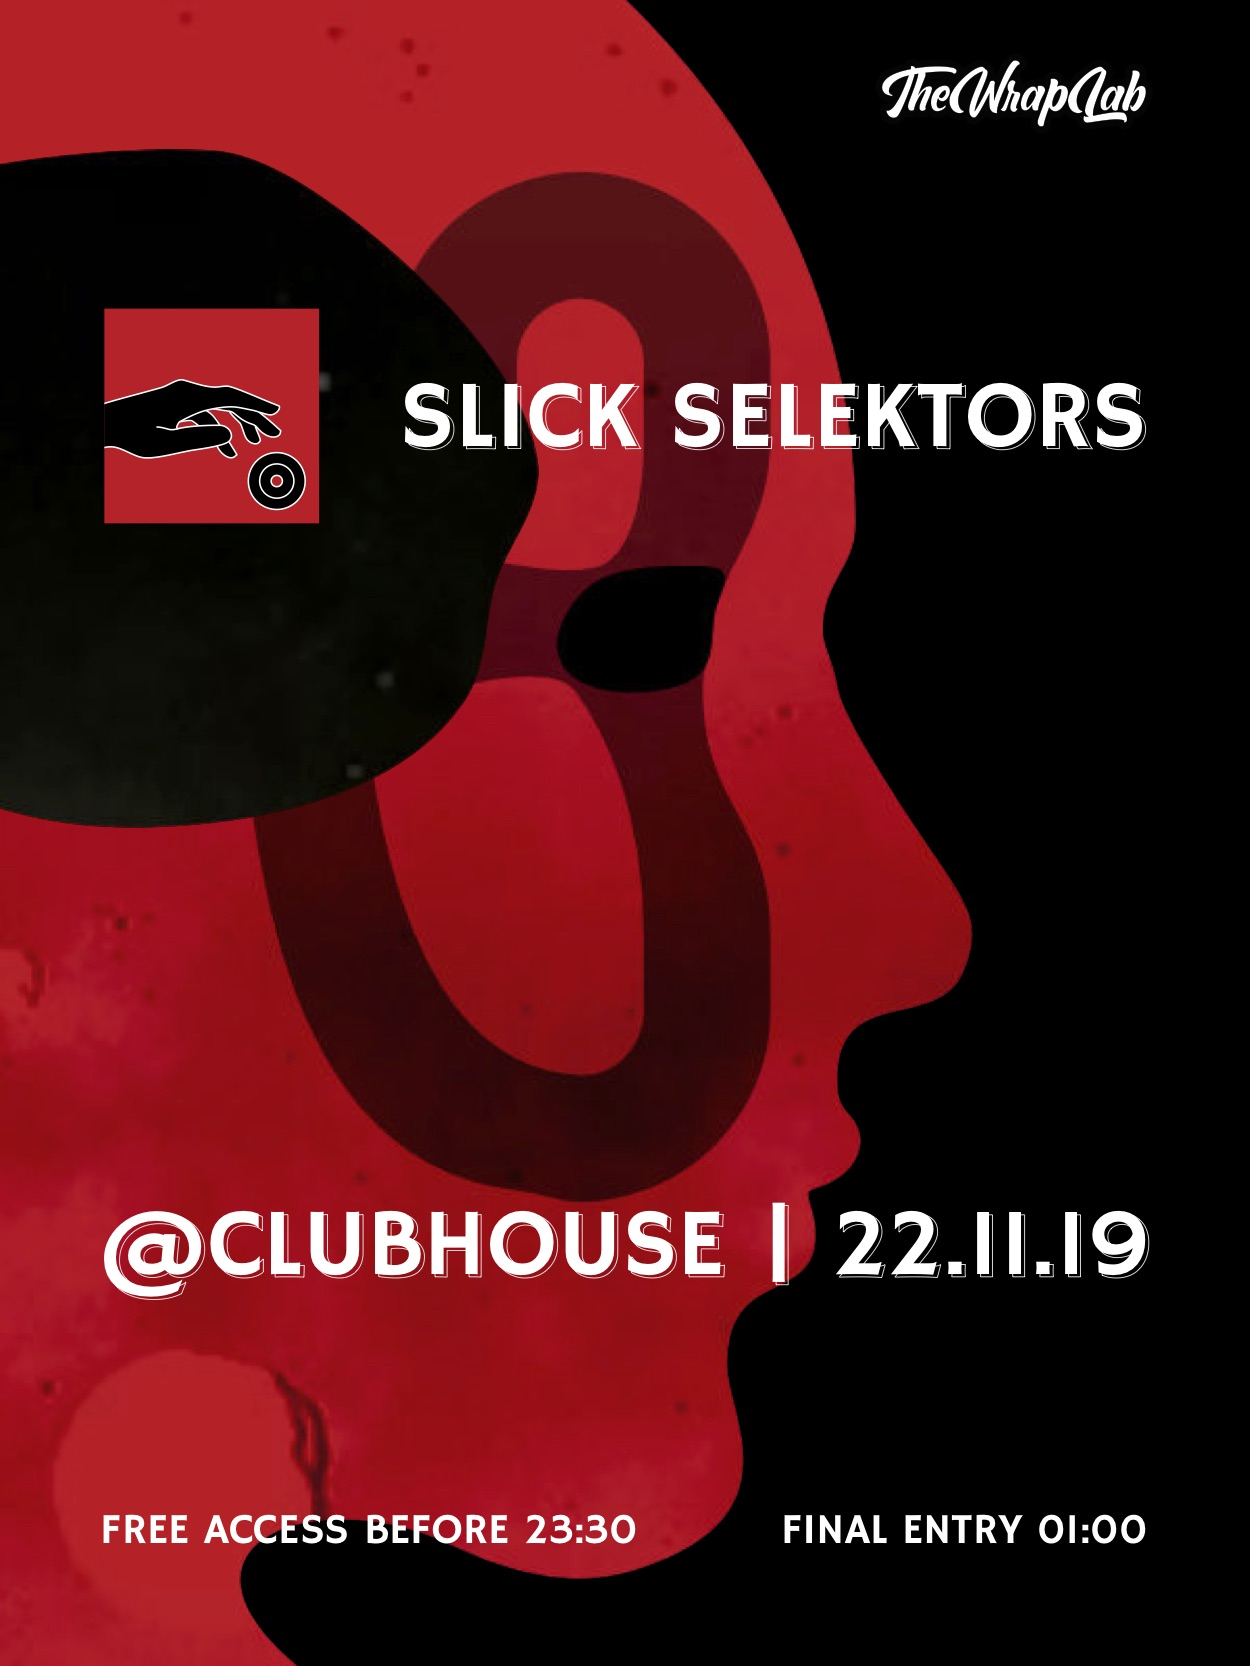 Slick Selektors @ClubHouse flyer